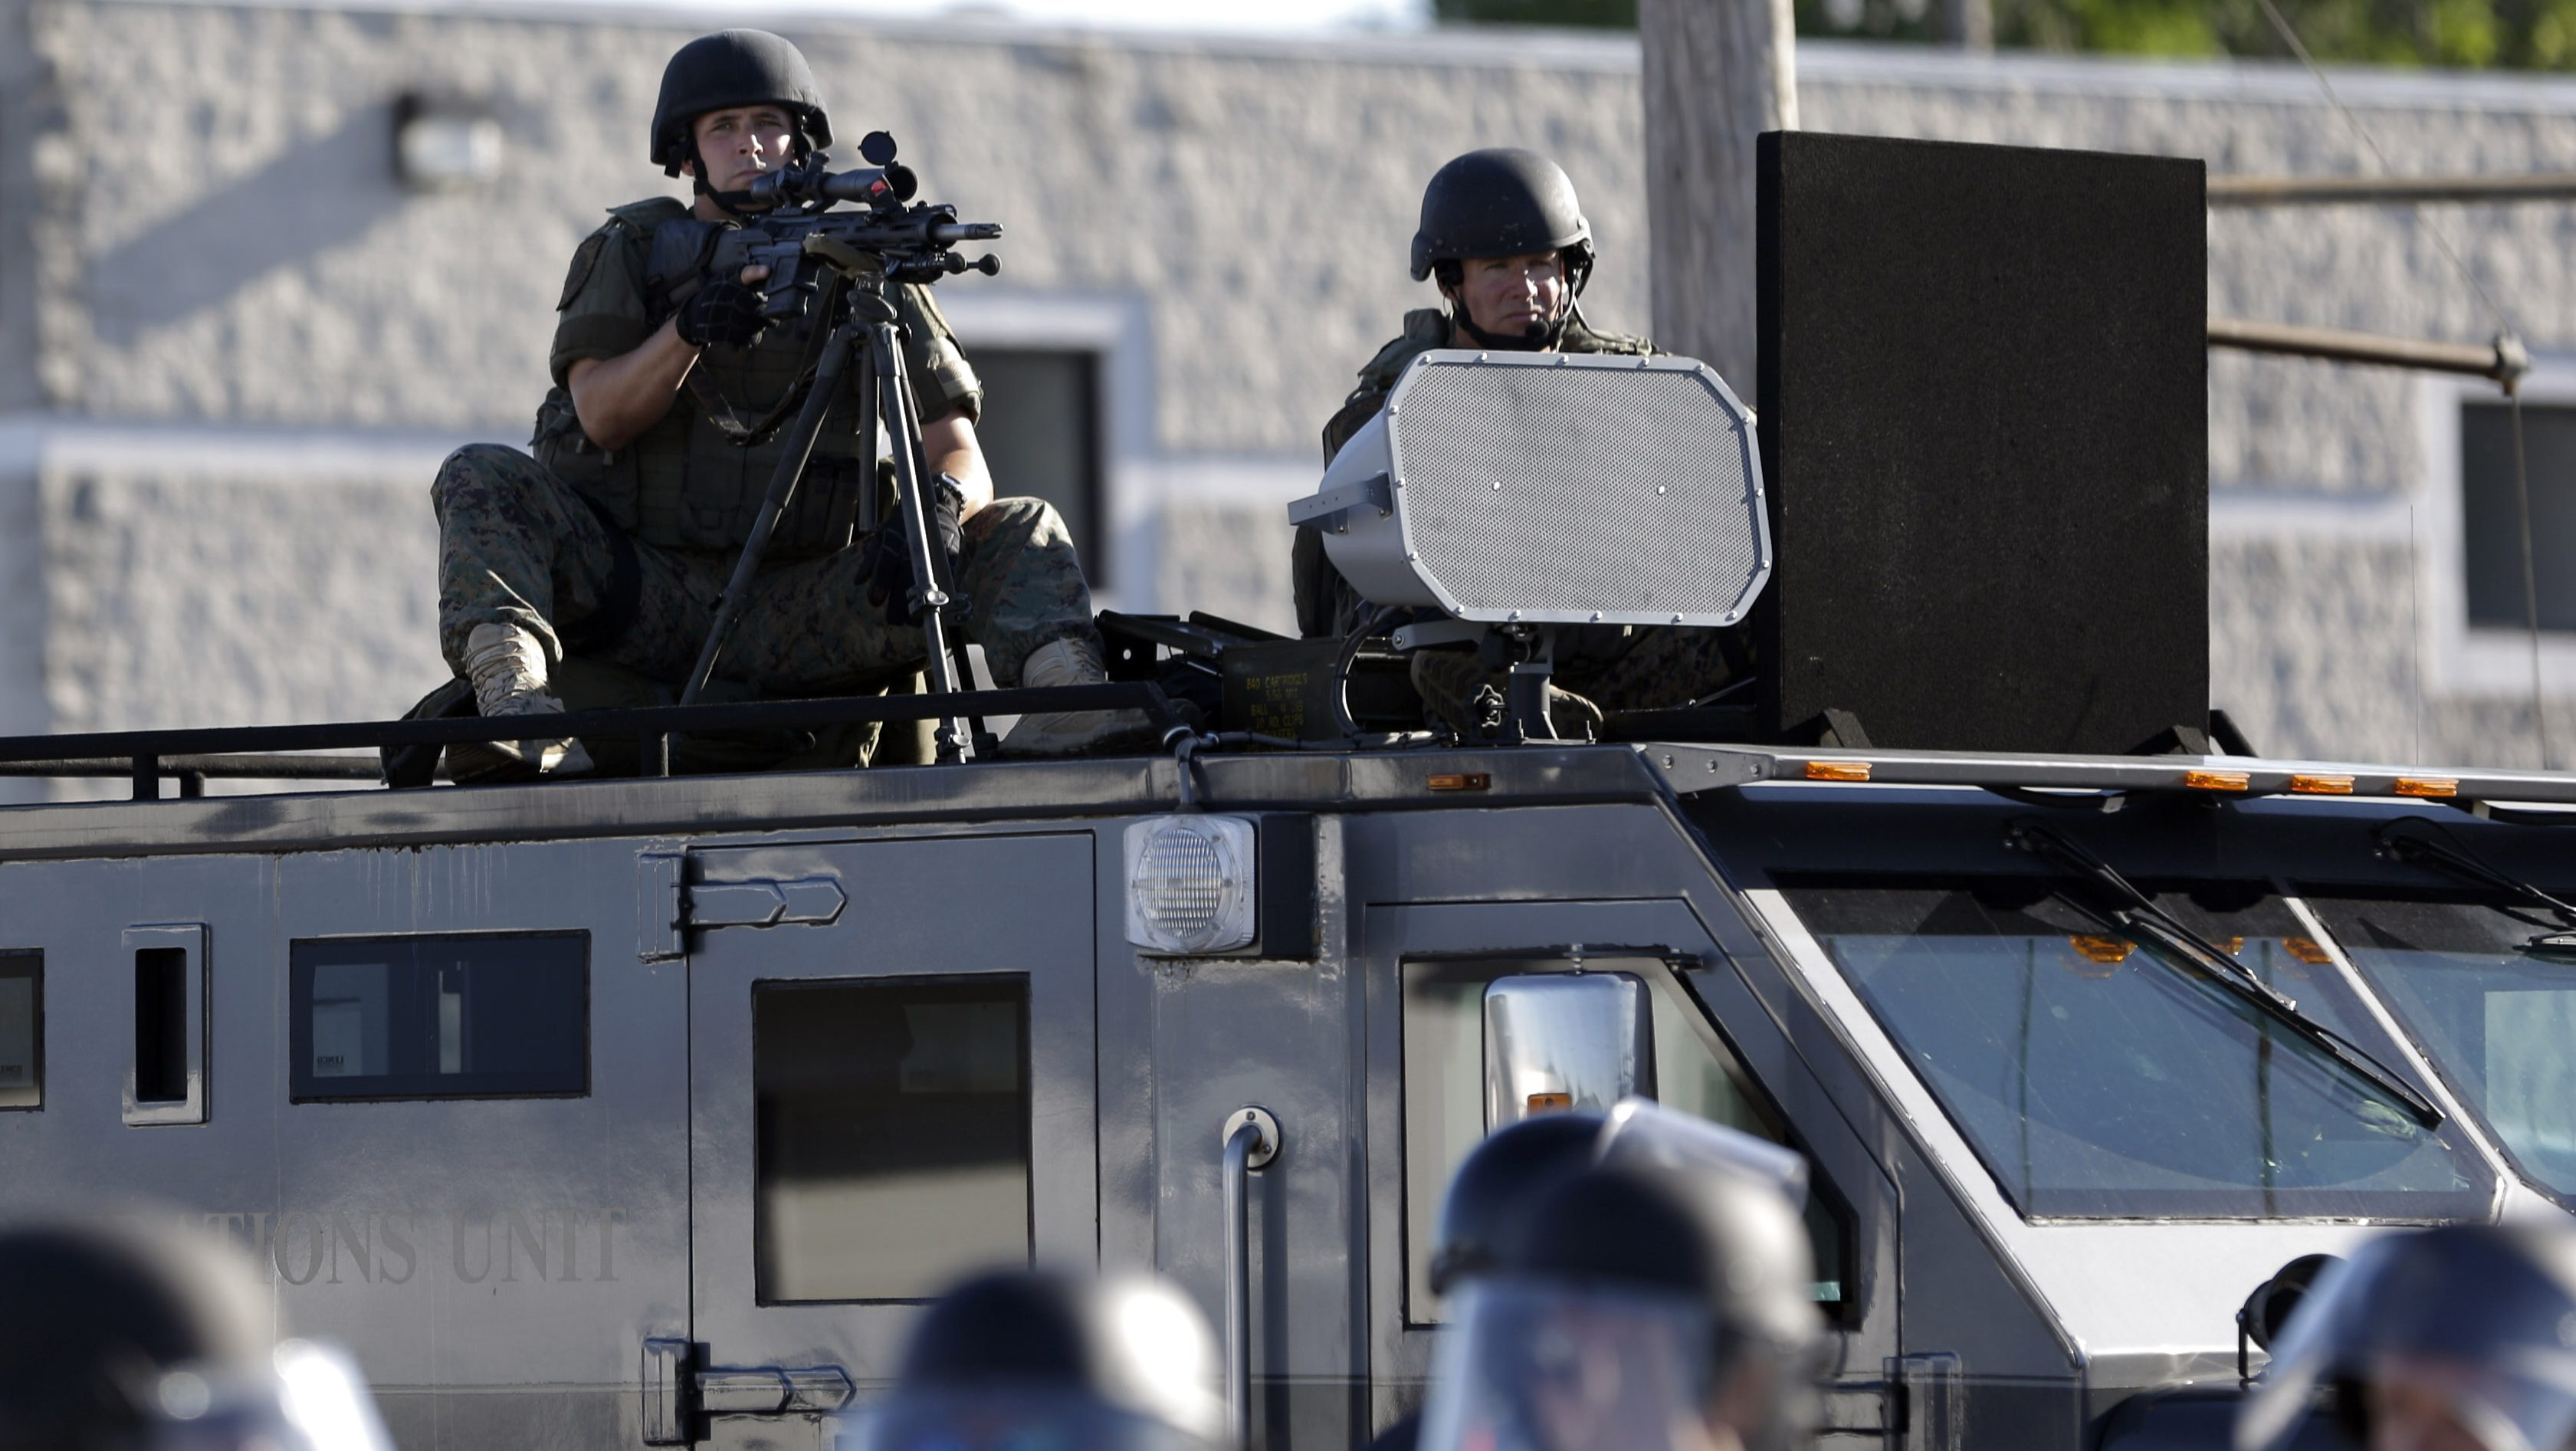 In this Aug. 9, 2014, file photo, a police tactical team moves in to disperse a group of protesters following the shooting of a young black man by a white policeman in Ferguson, Mo. If president-elect Donald Trump keeps his promise, surplus military grenade launchers, bayonets, tracked armored vehicles and high-powered firearms and ammunition will once again be available to state and local U.S. police departments. National police organizations say they'll hold Trump to that promise.(AP Photo/Jeff Roberson, File)